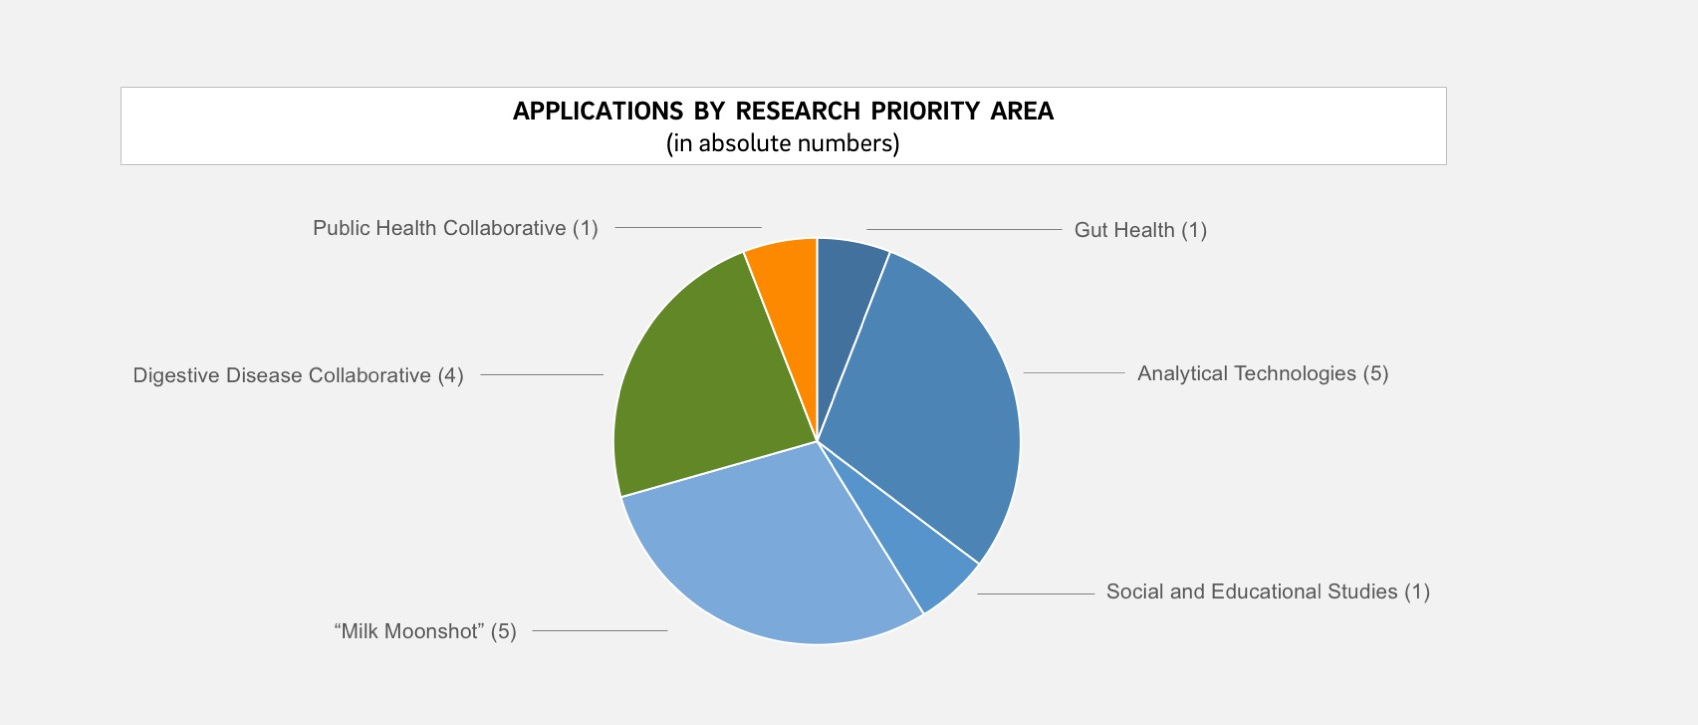 pie chart for percentagese of applications by research priority area